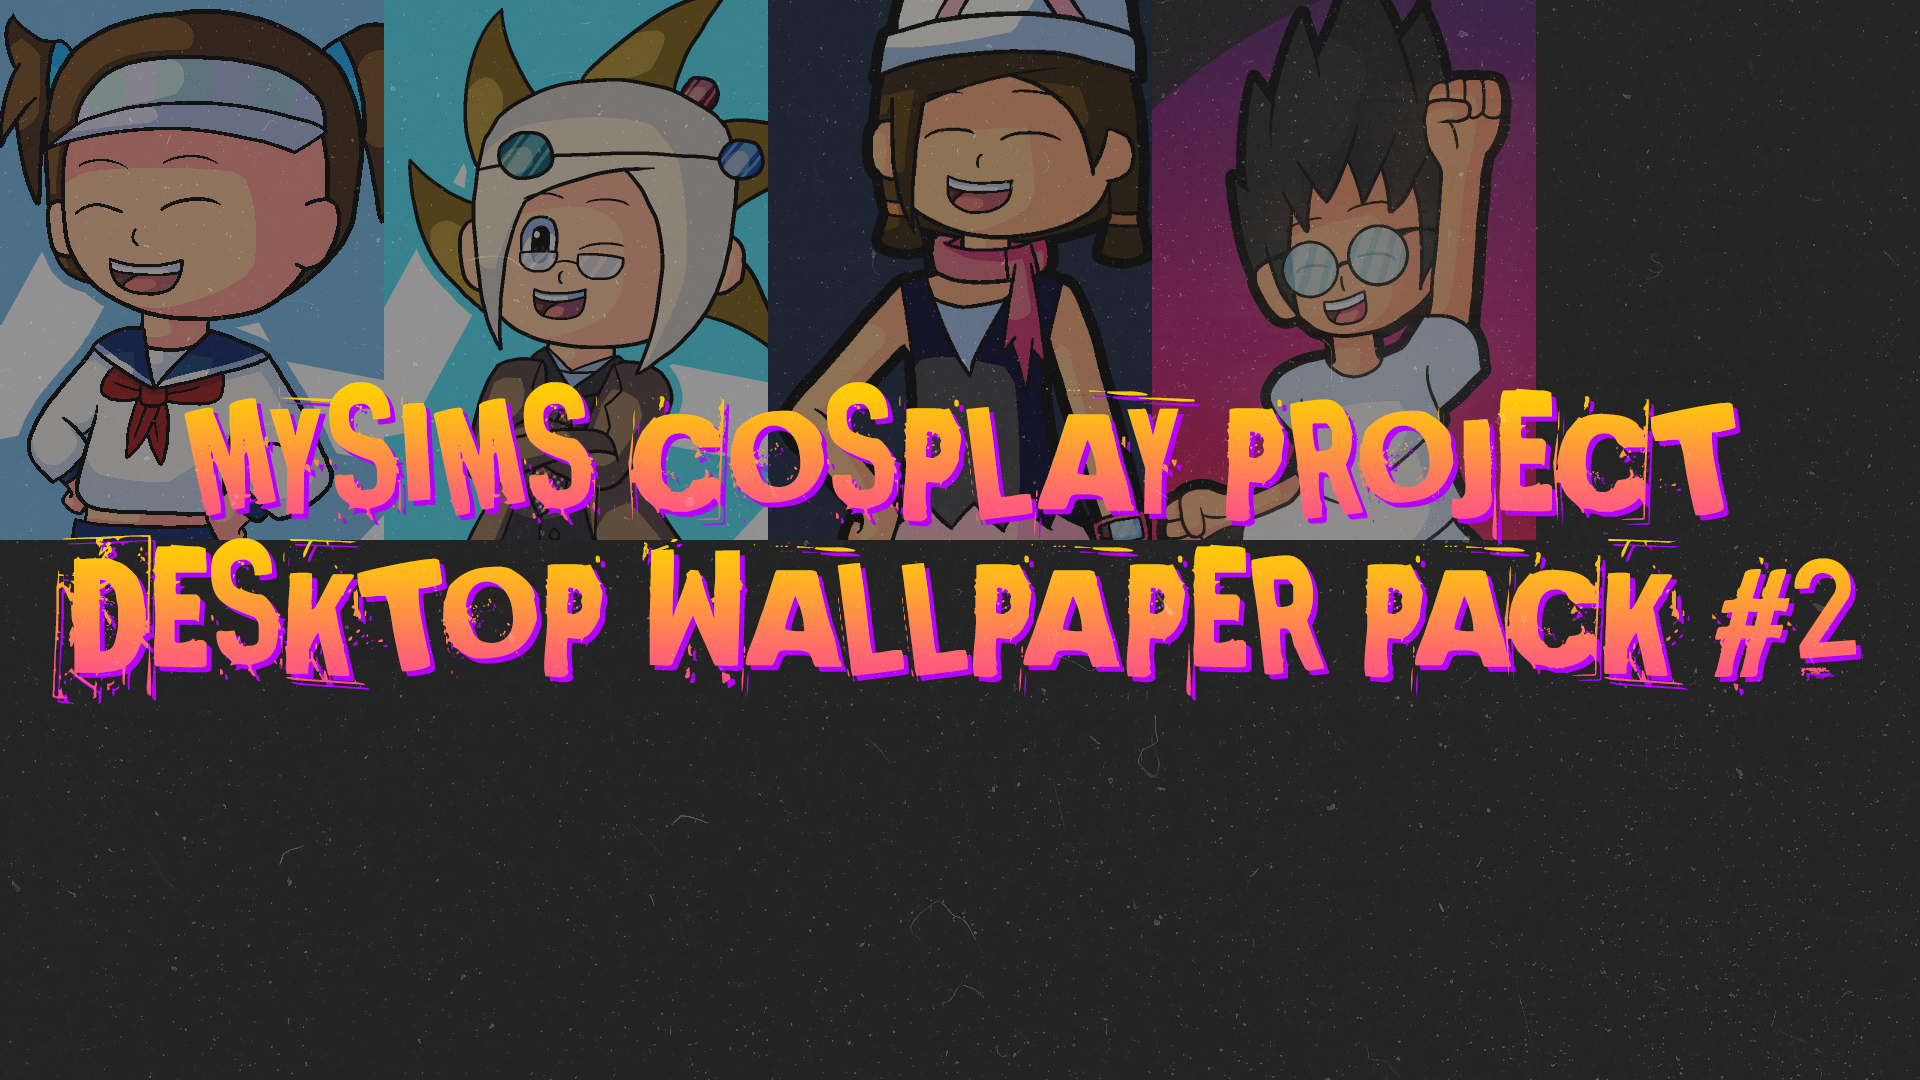 Mysims Cosplay Project Desktop Wallpaper Pack  Samurai Fox Studio Medium